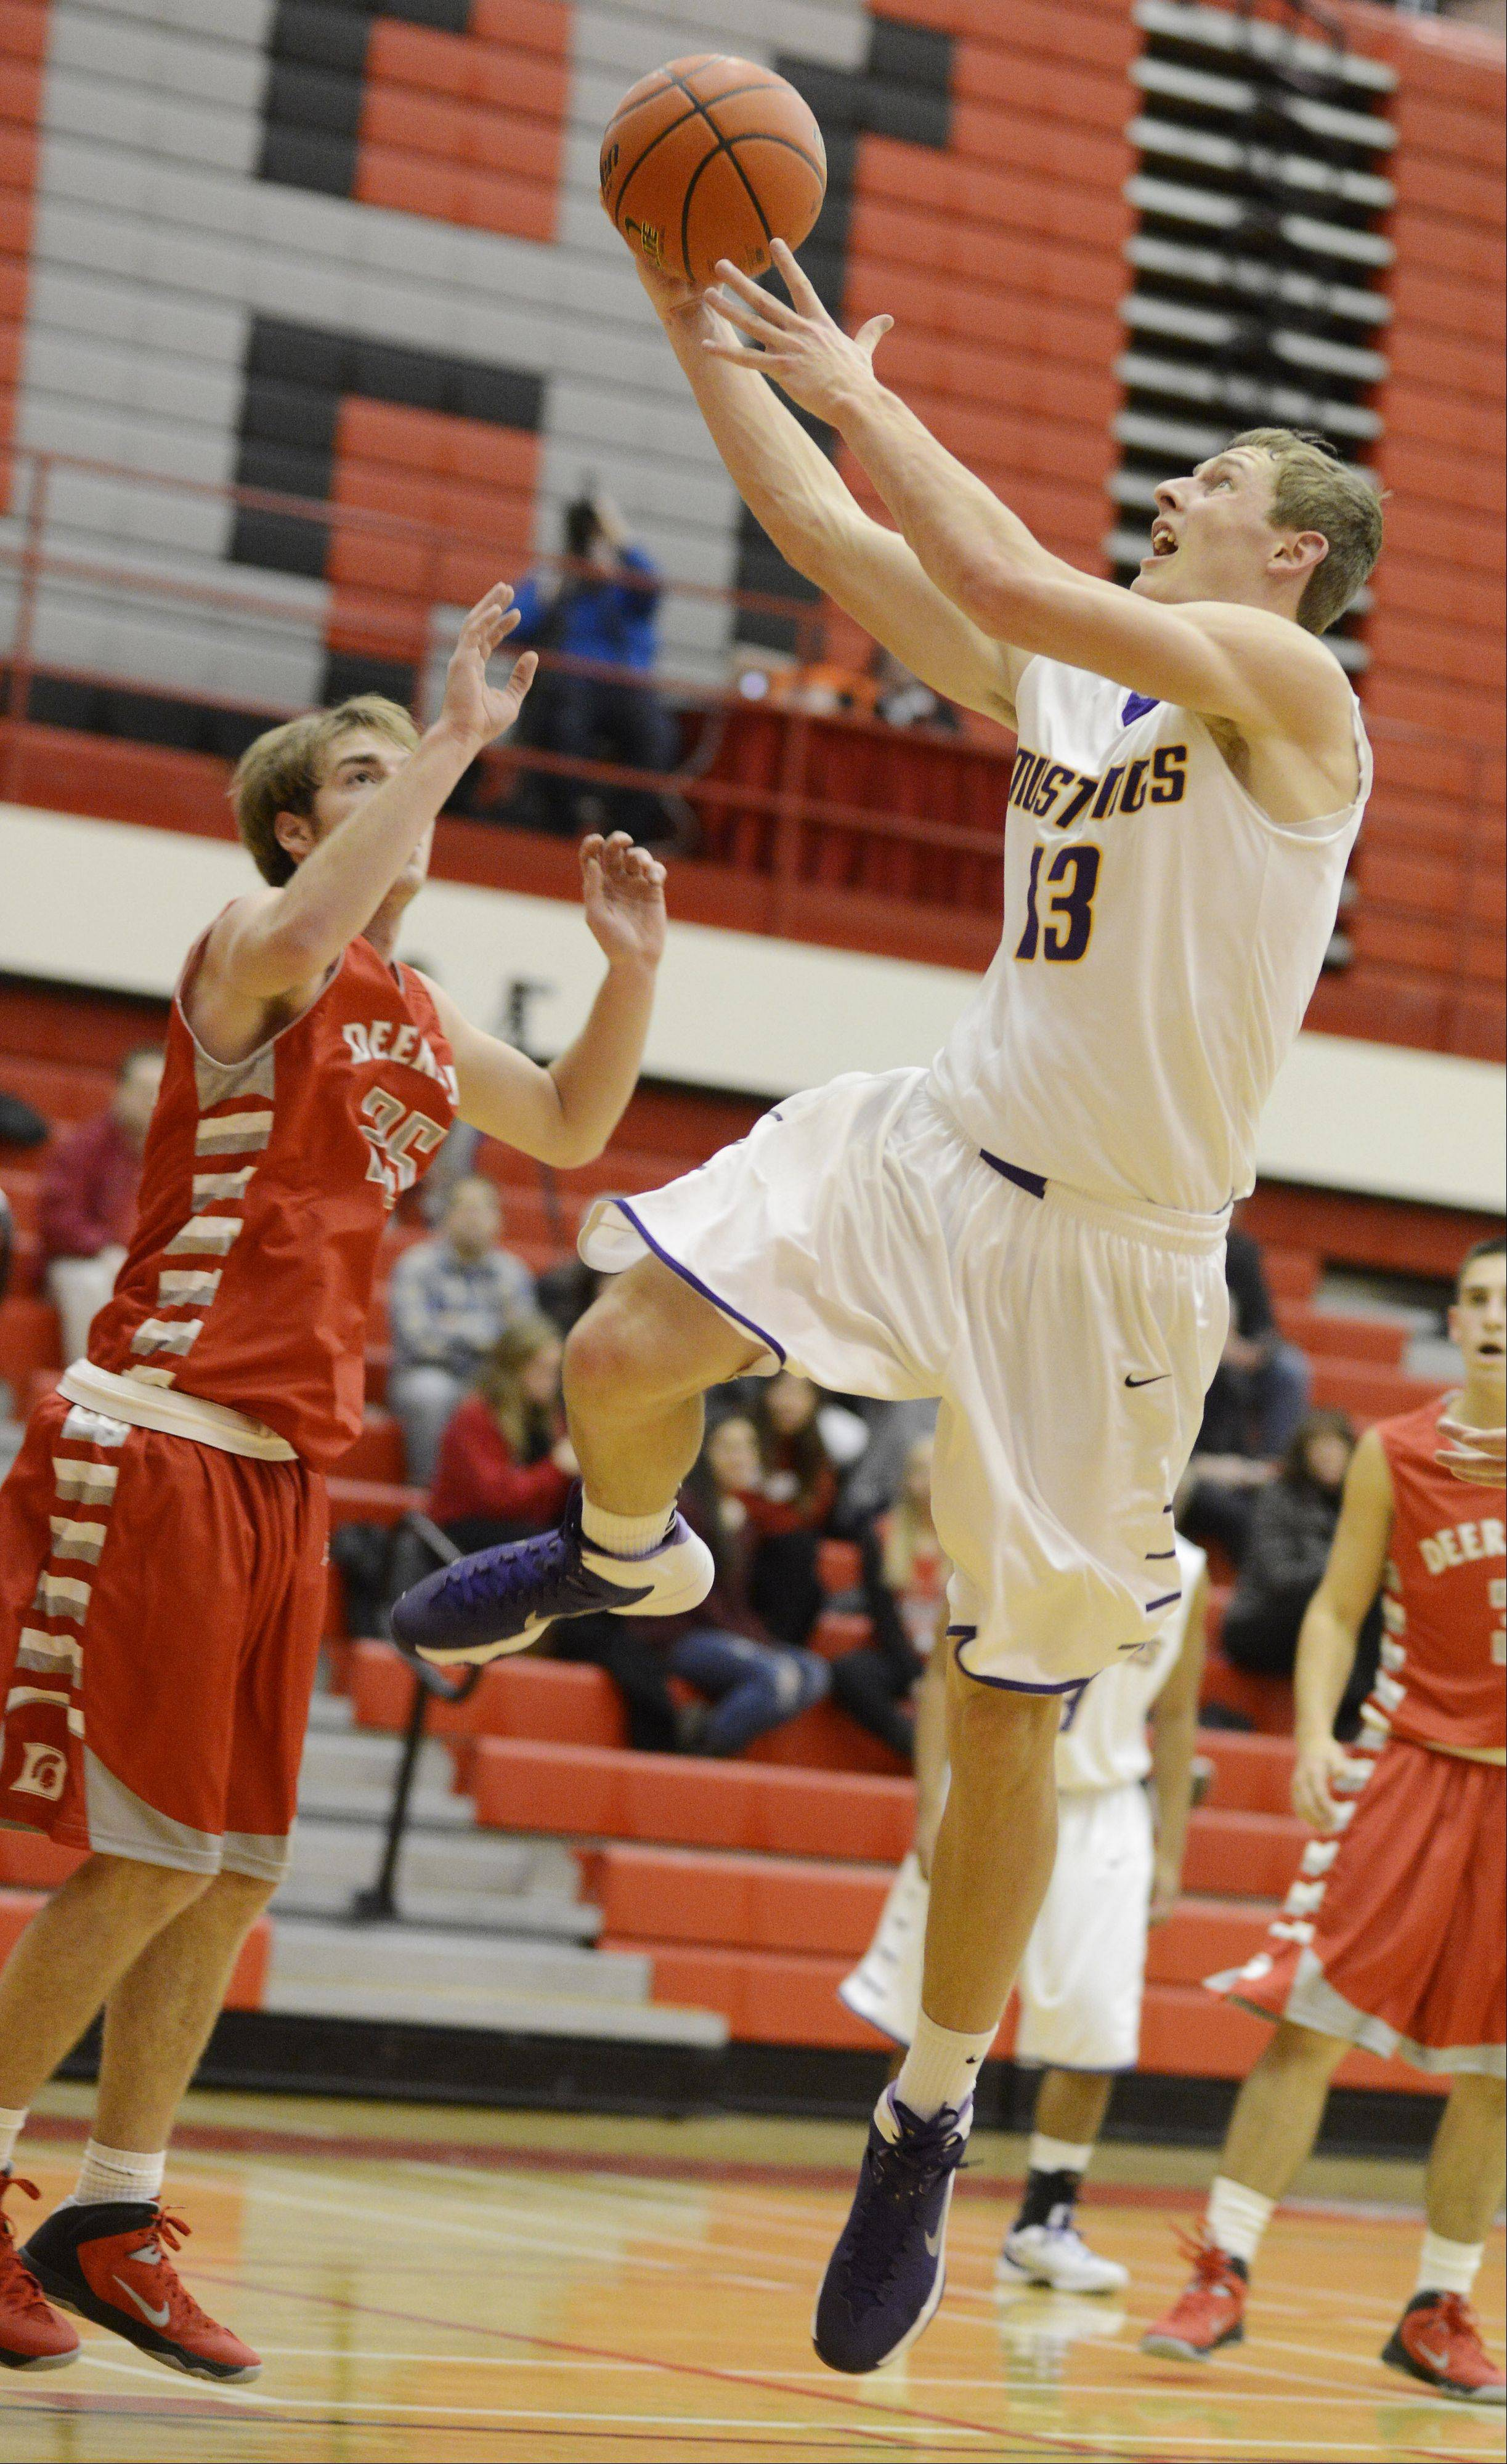 Rolling Meadows' Matt Dolan drives to the basket for a layup during Tuesday's game in Palatine.